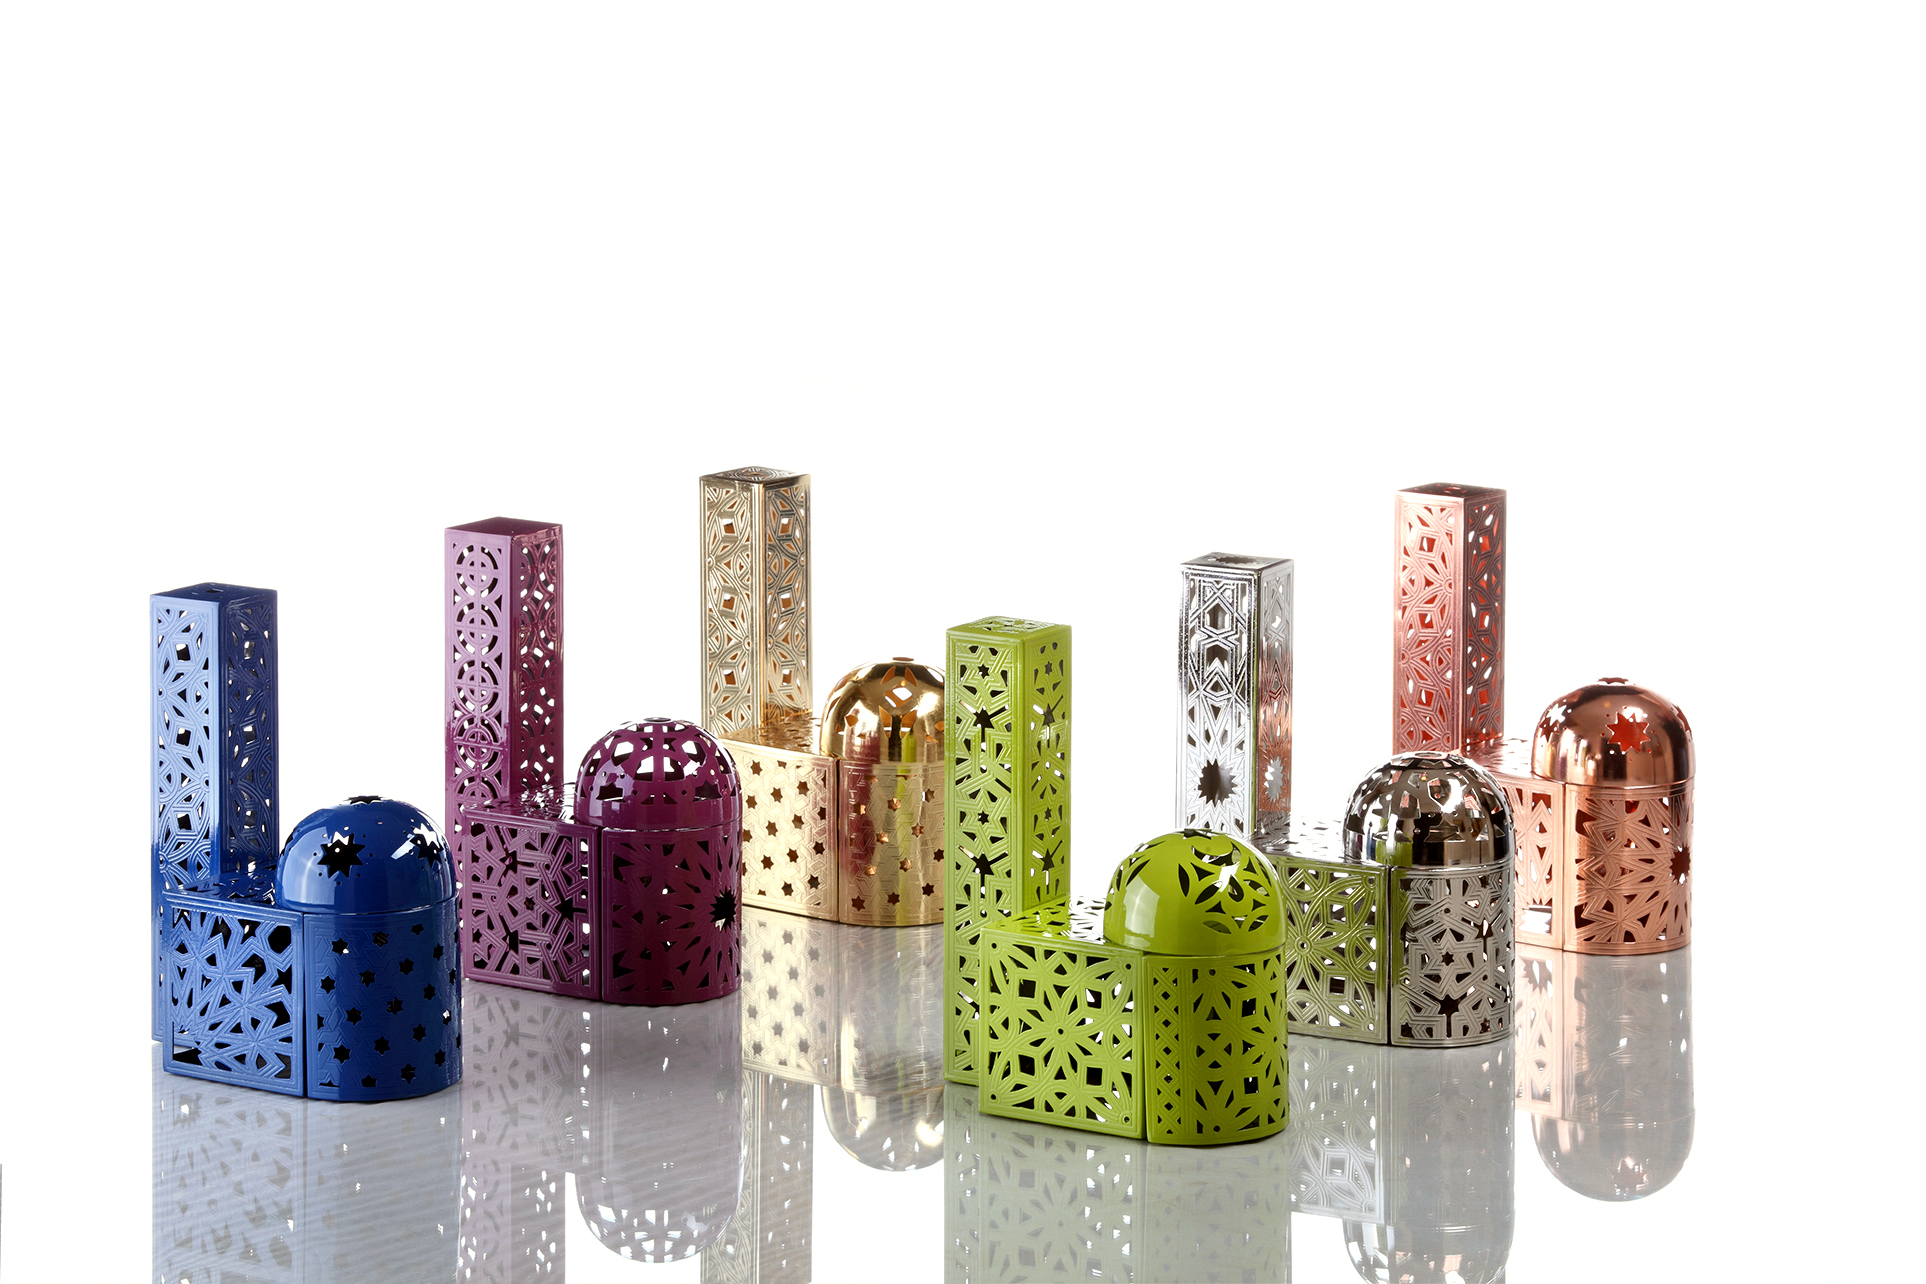 Mabruka Metal Blocks collection